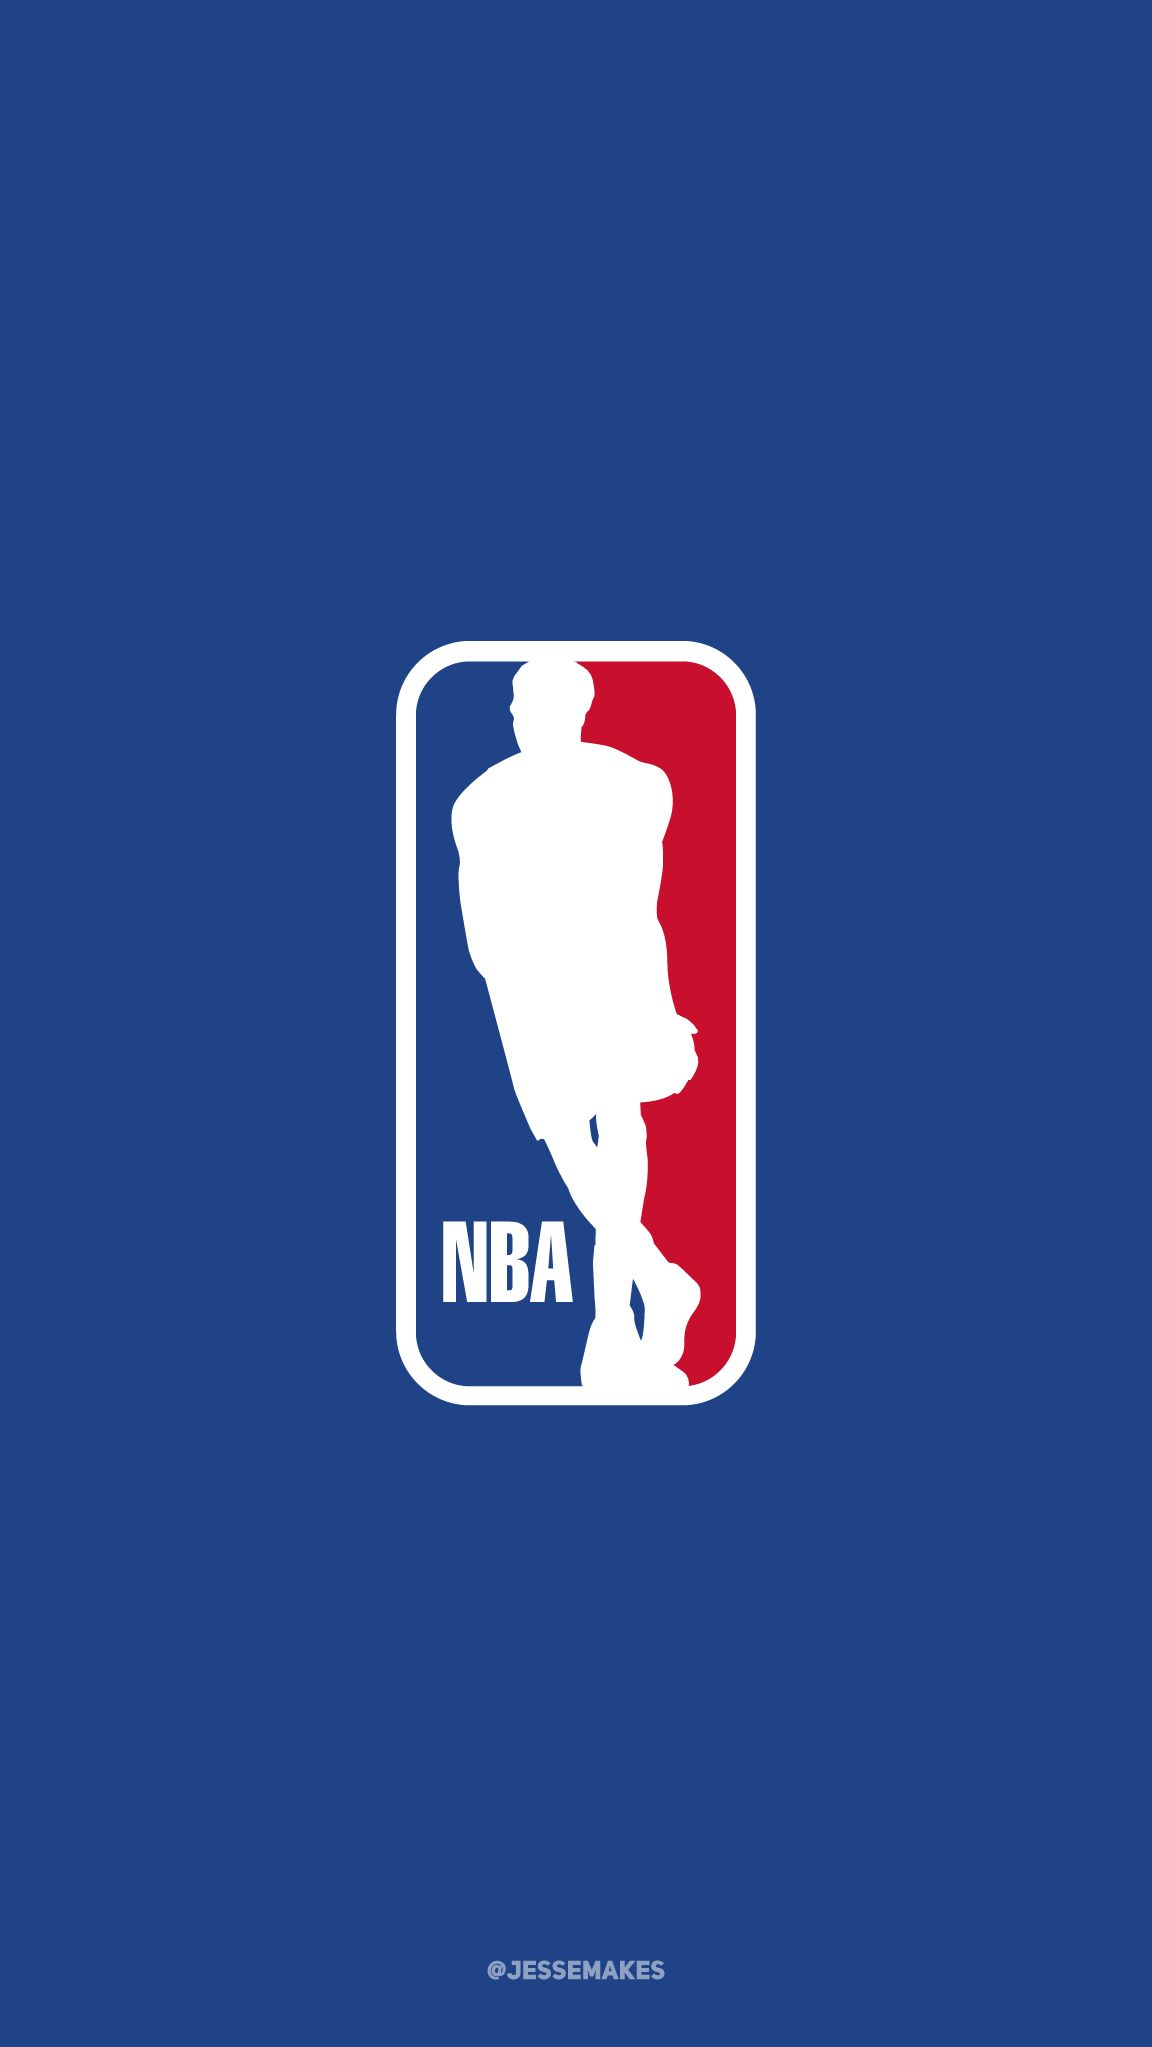 Anthony Davis as the subject of the NBA logo  Part of my NBA